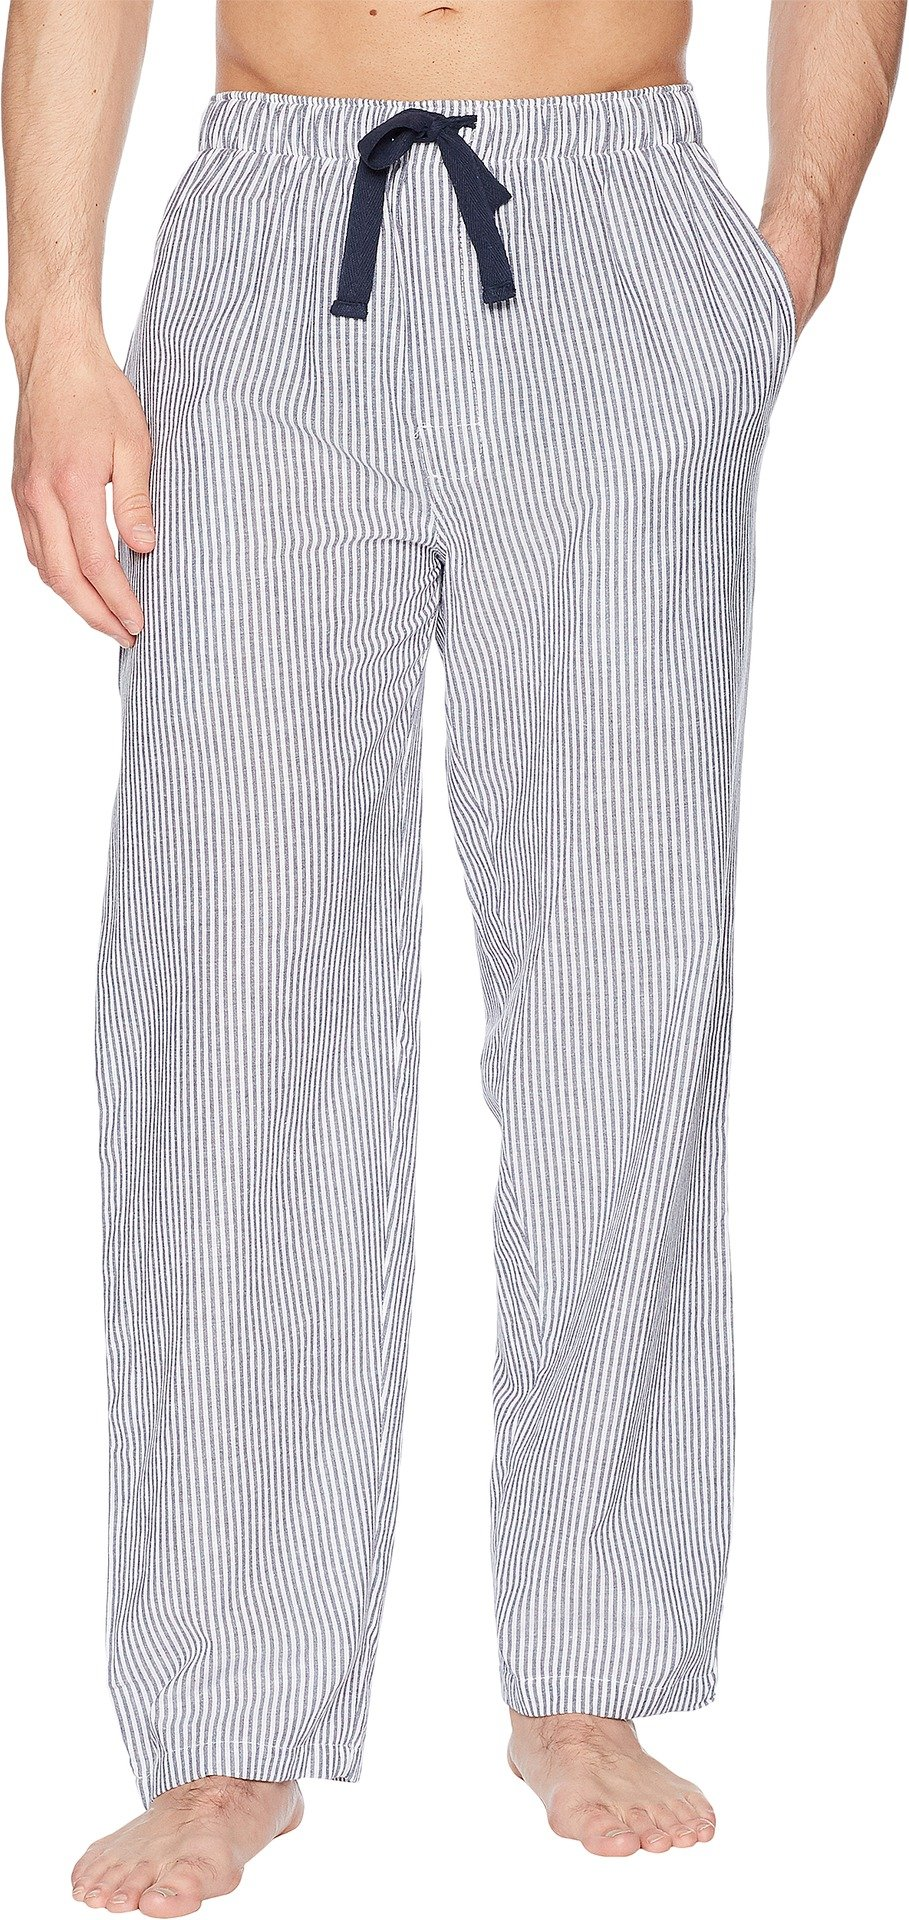 Jockey Men's Yarn-Dye Broadcloth Sleep Pants Navy/White Stripe X-Large